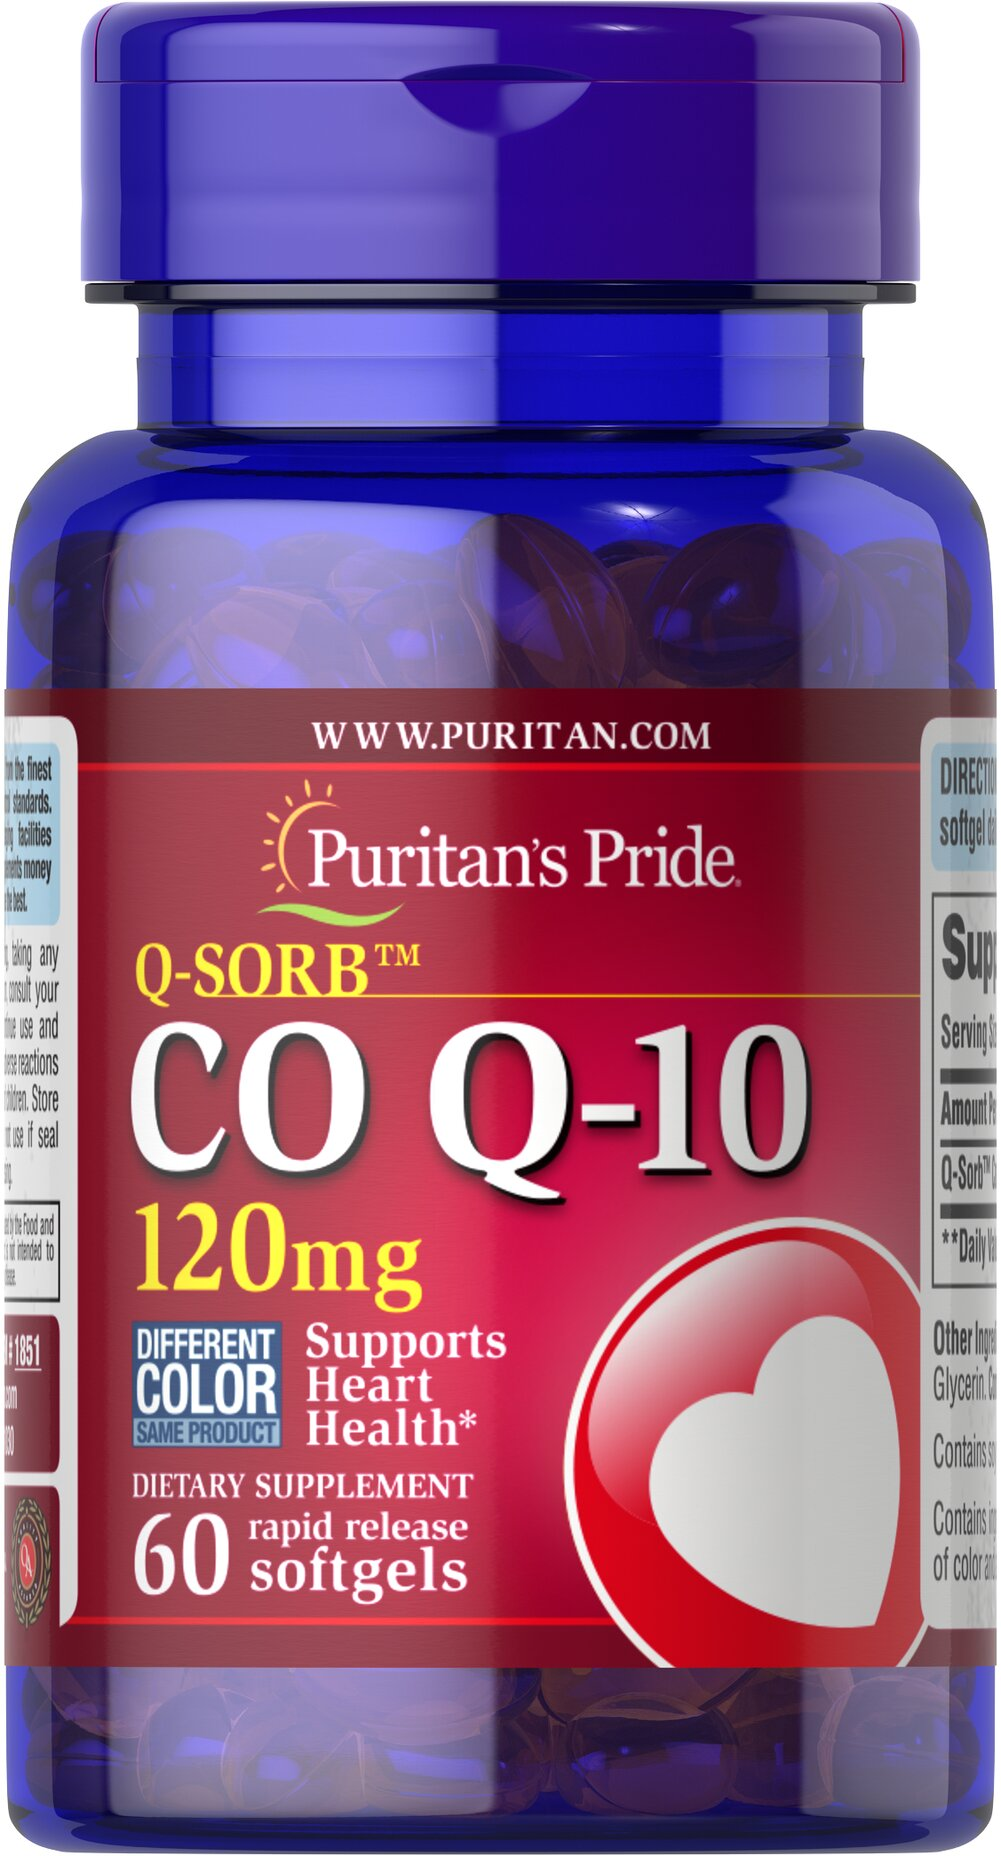 Co Q-10 120 mg <p>Puritan's Pride Q-Sorb™ Co Q-10 (coq10) provides antioxidant support for your heart and ensures potency and purity.**</p><p>Our Q-Sorb™ Co Q-10 is hermetically sealed in rapid release softgels to provide superior absorption</p><p>Contributes to your heart and cardiovascular wellness**</p><p>Helps support blood pressure levels already within a normal range**</p><p>Promotes energy production within your heart, brain, and muscl